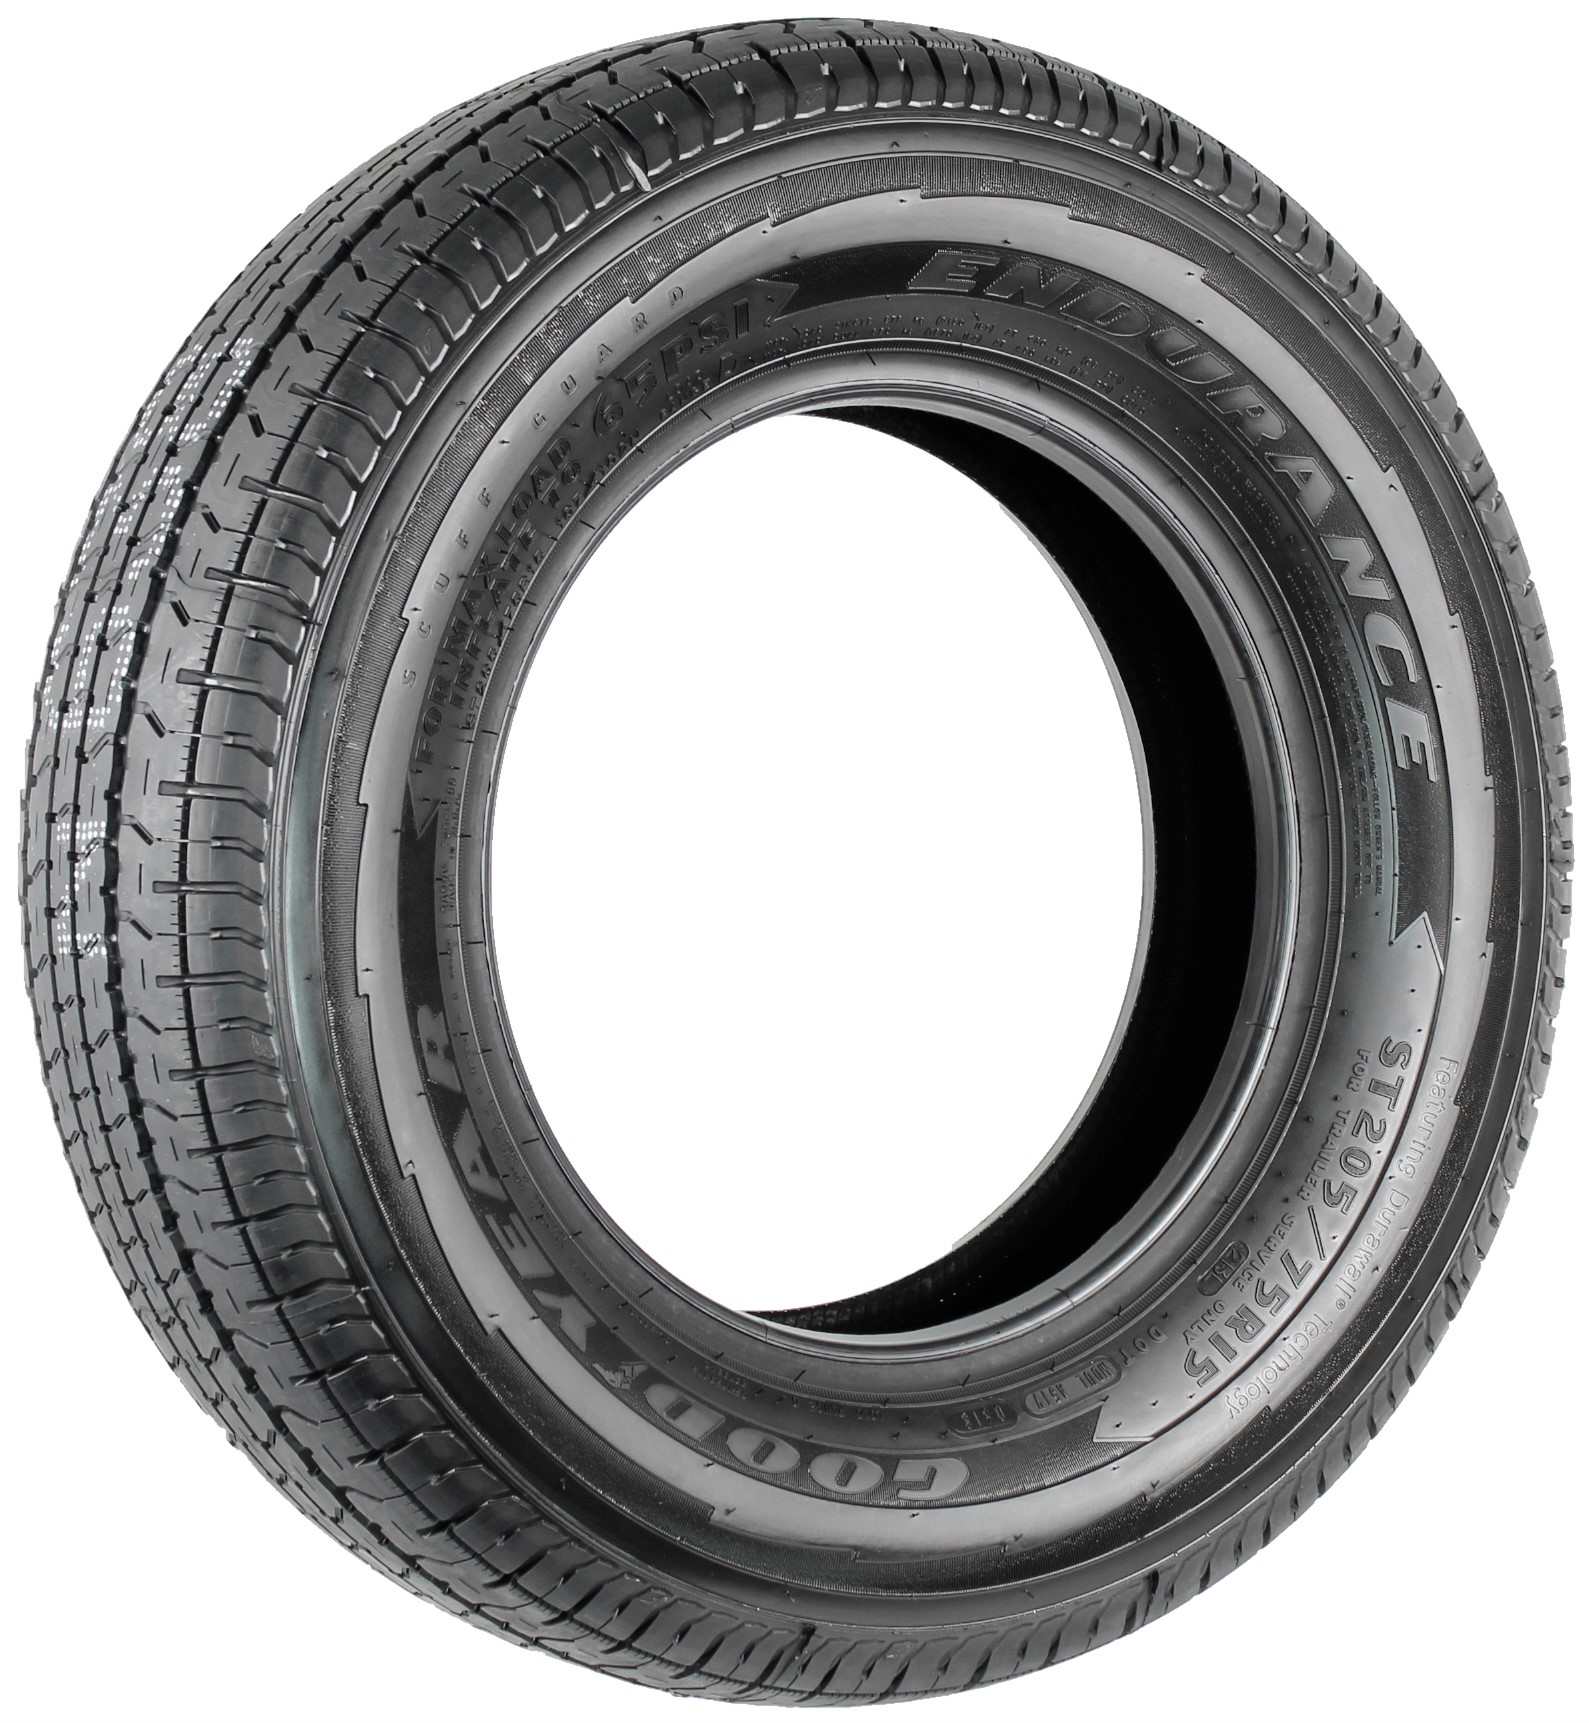 Goodyear Endurance ST205/75R15 LRD Radial Trailer Tire Image